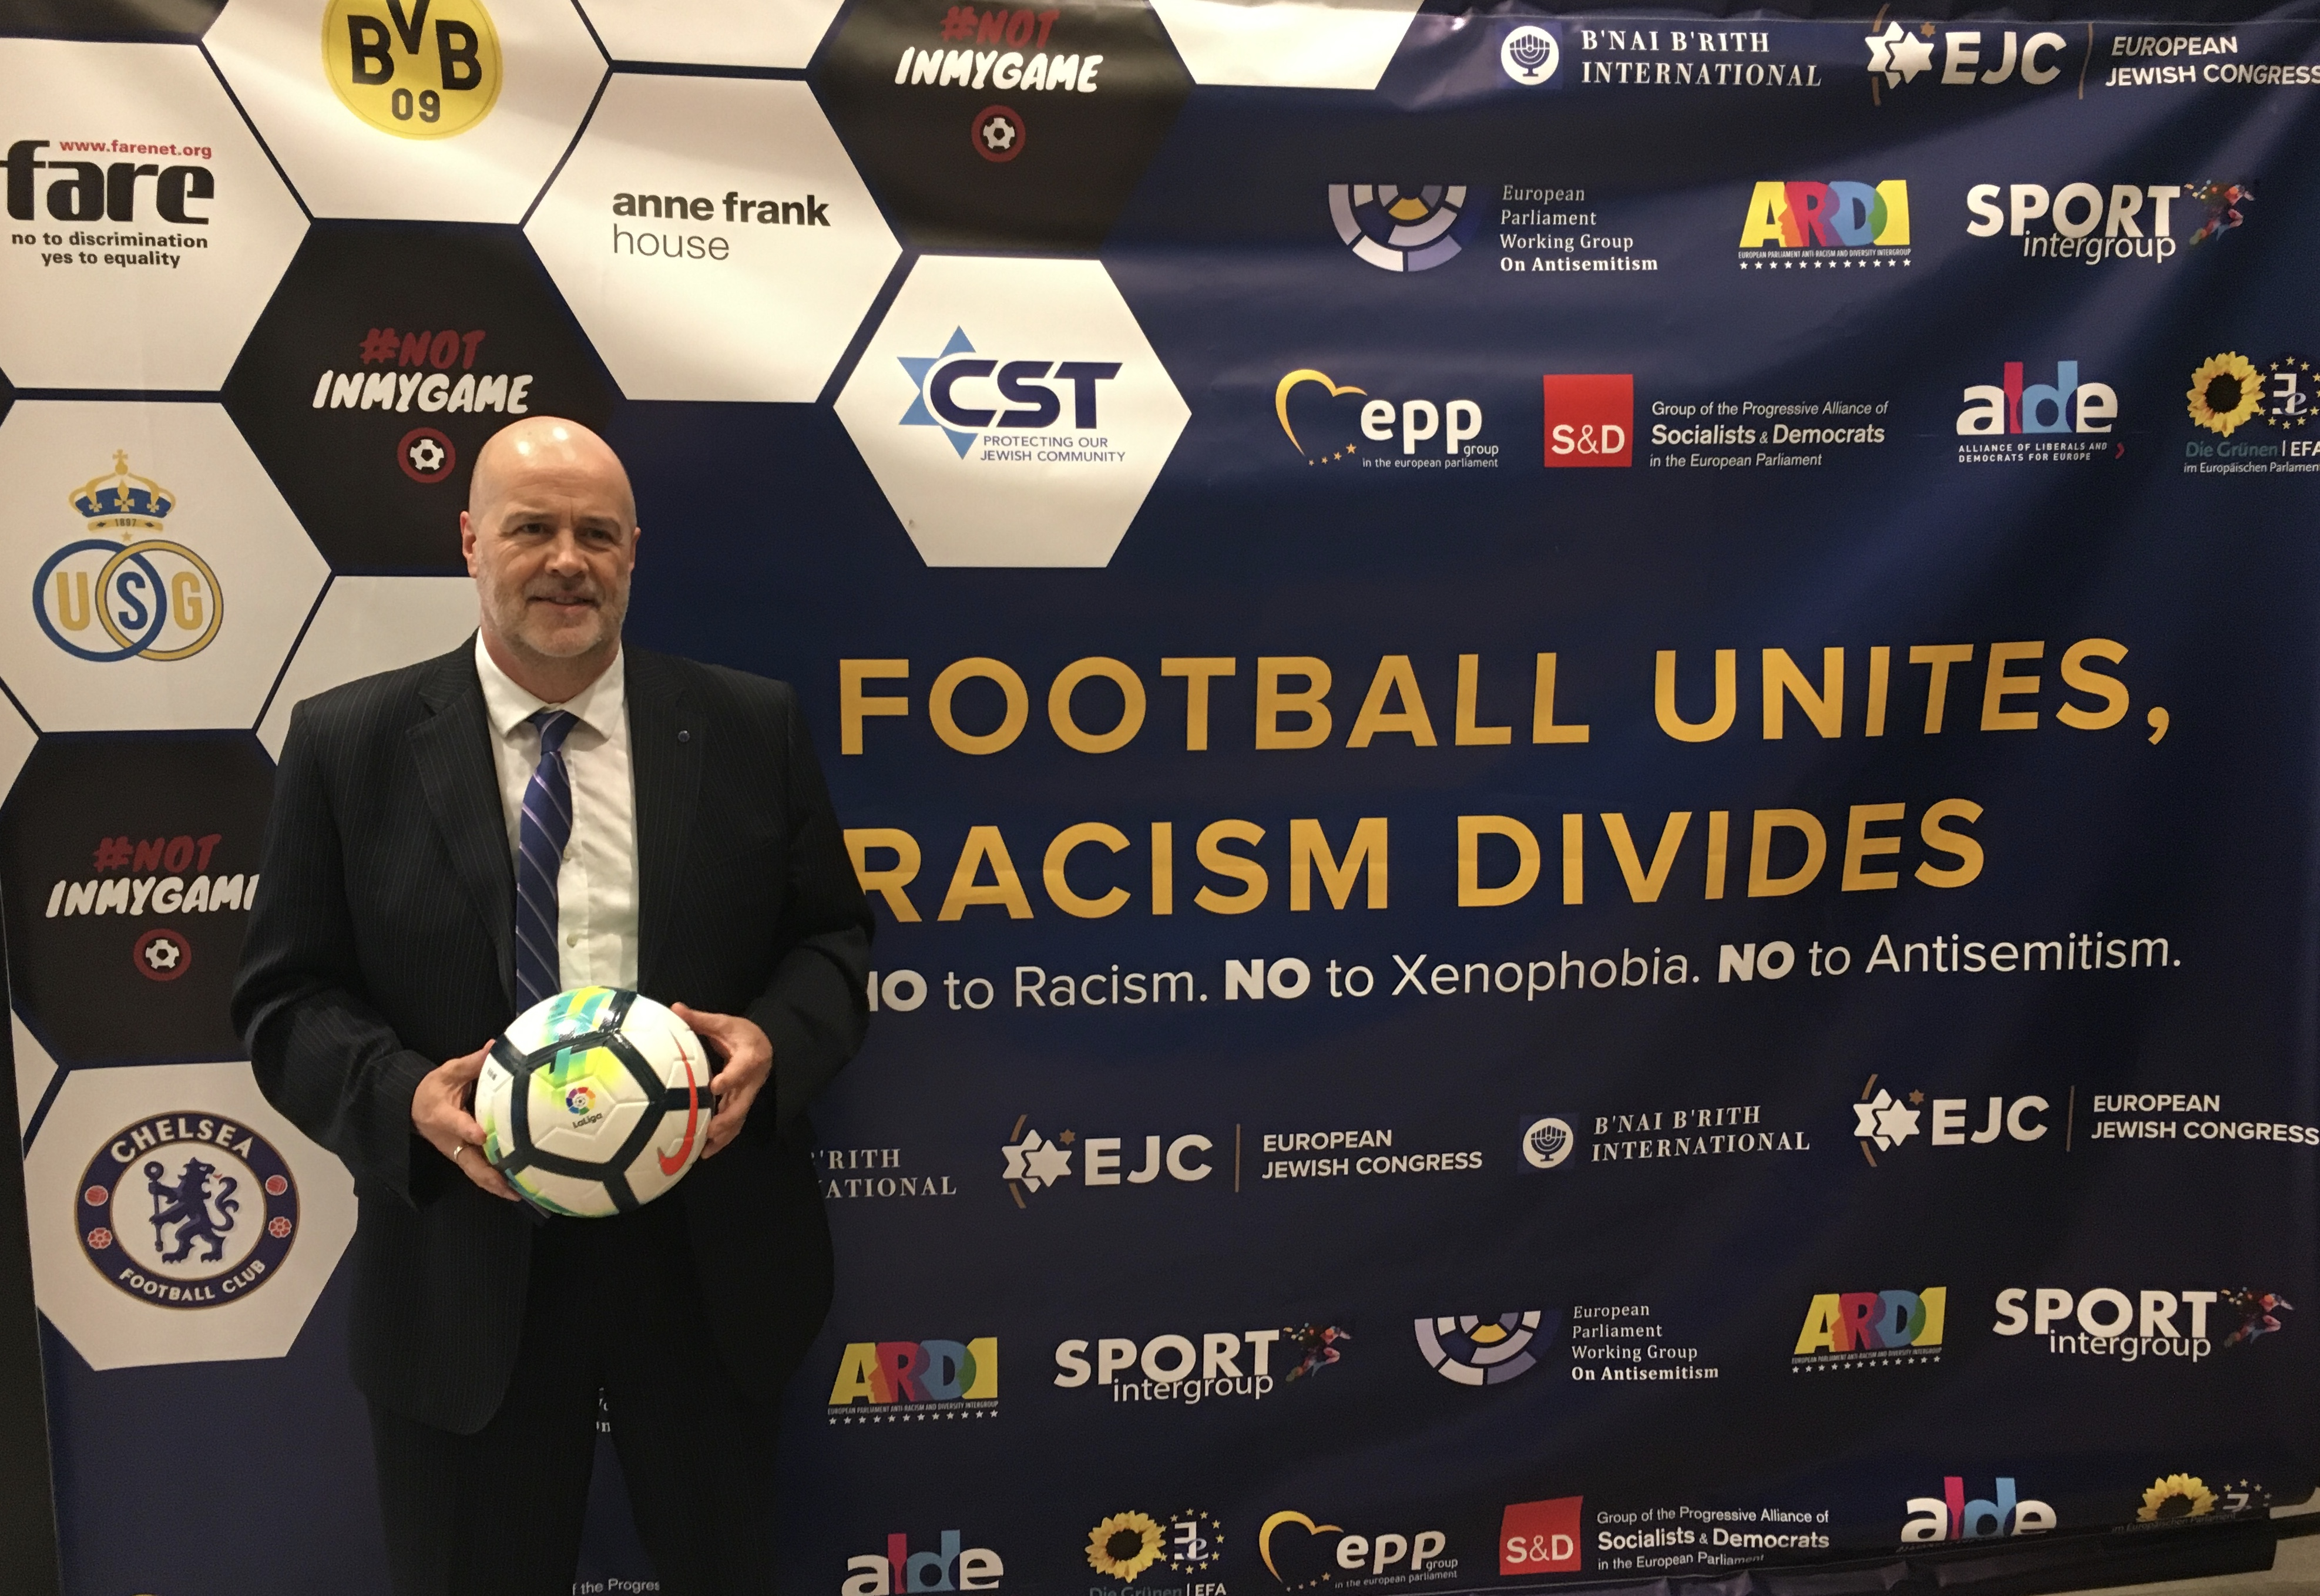 Football Unites, Racism Divides #notinmygame